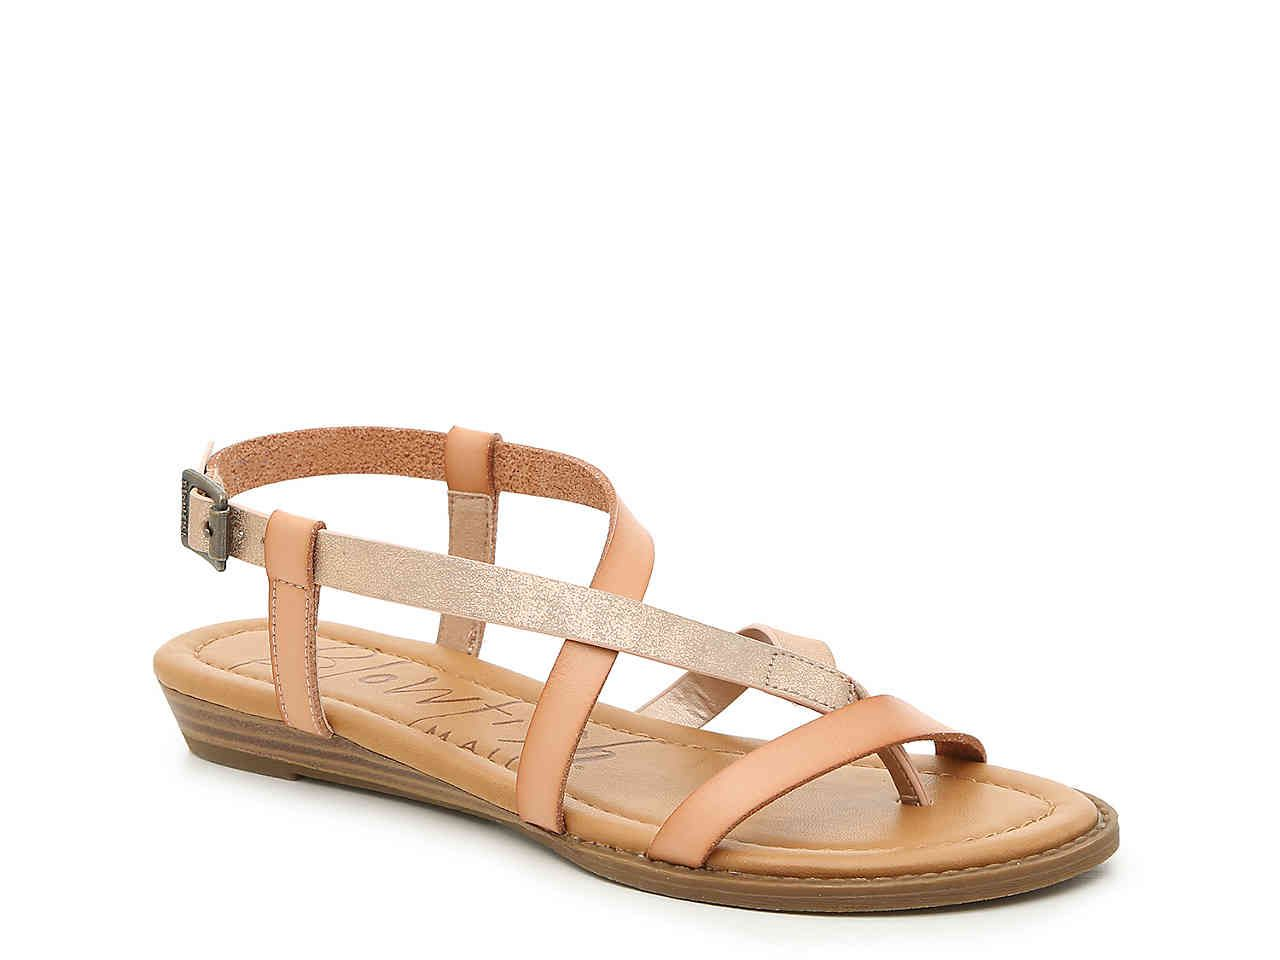 3a6661a1f86 Women Bolly Wedge Sandal -Light Brown in 2019 | omg shoes | Shoes ...